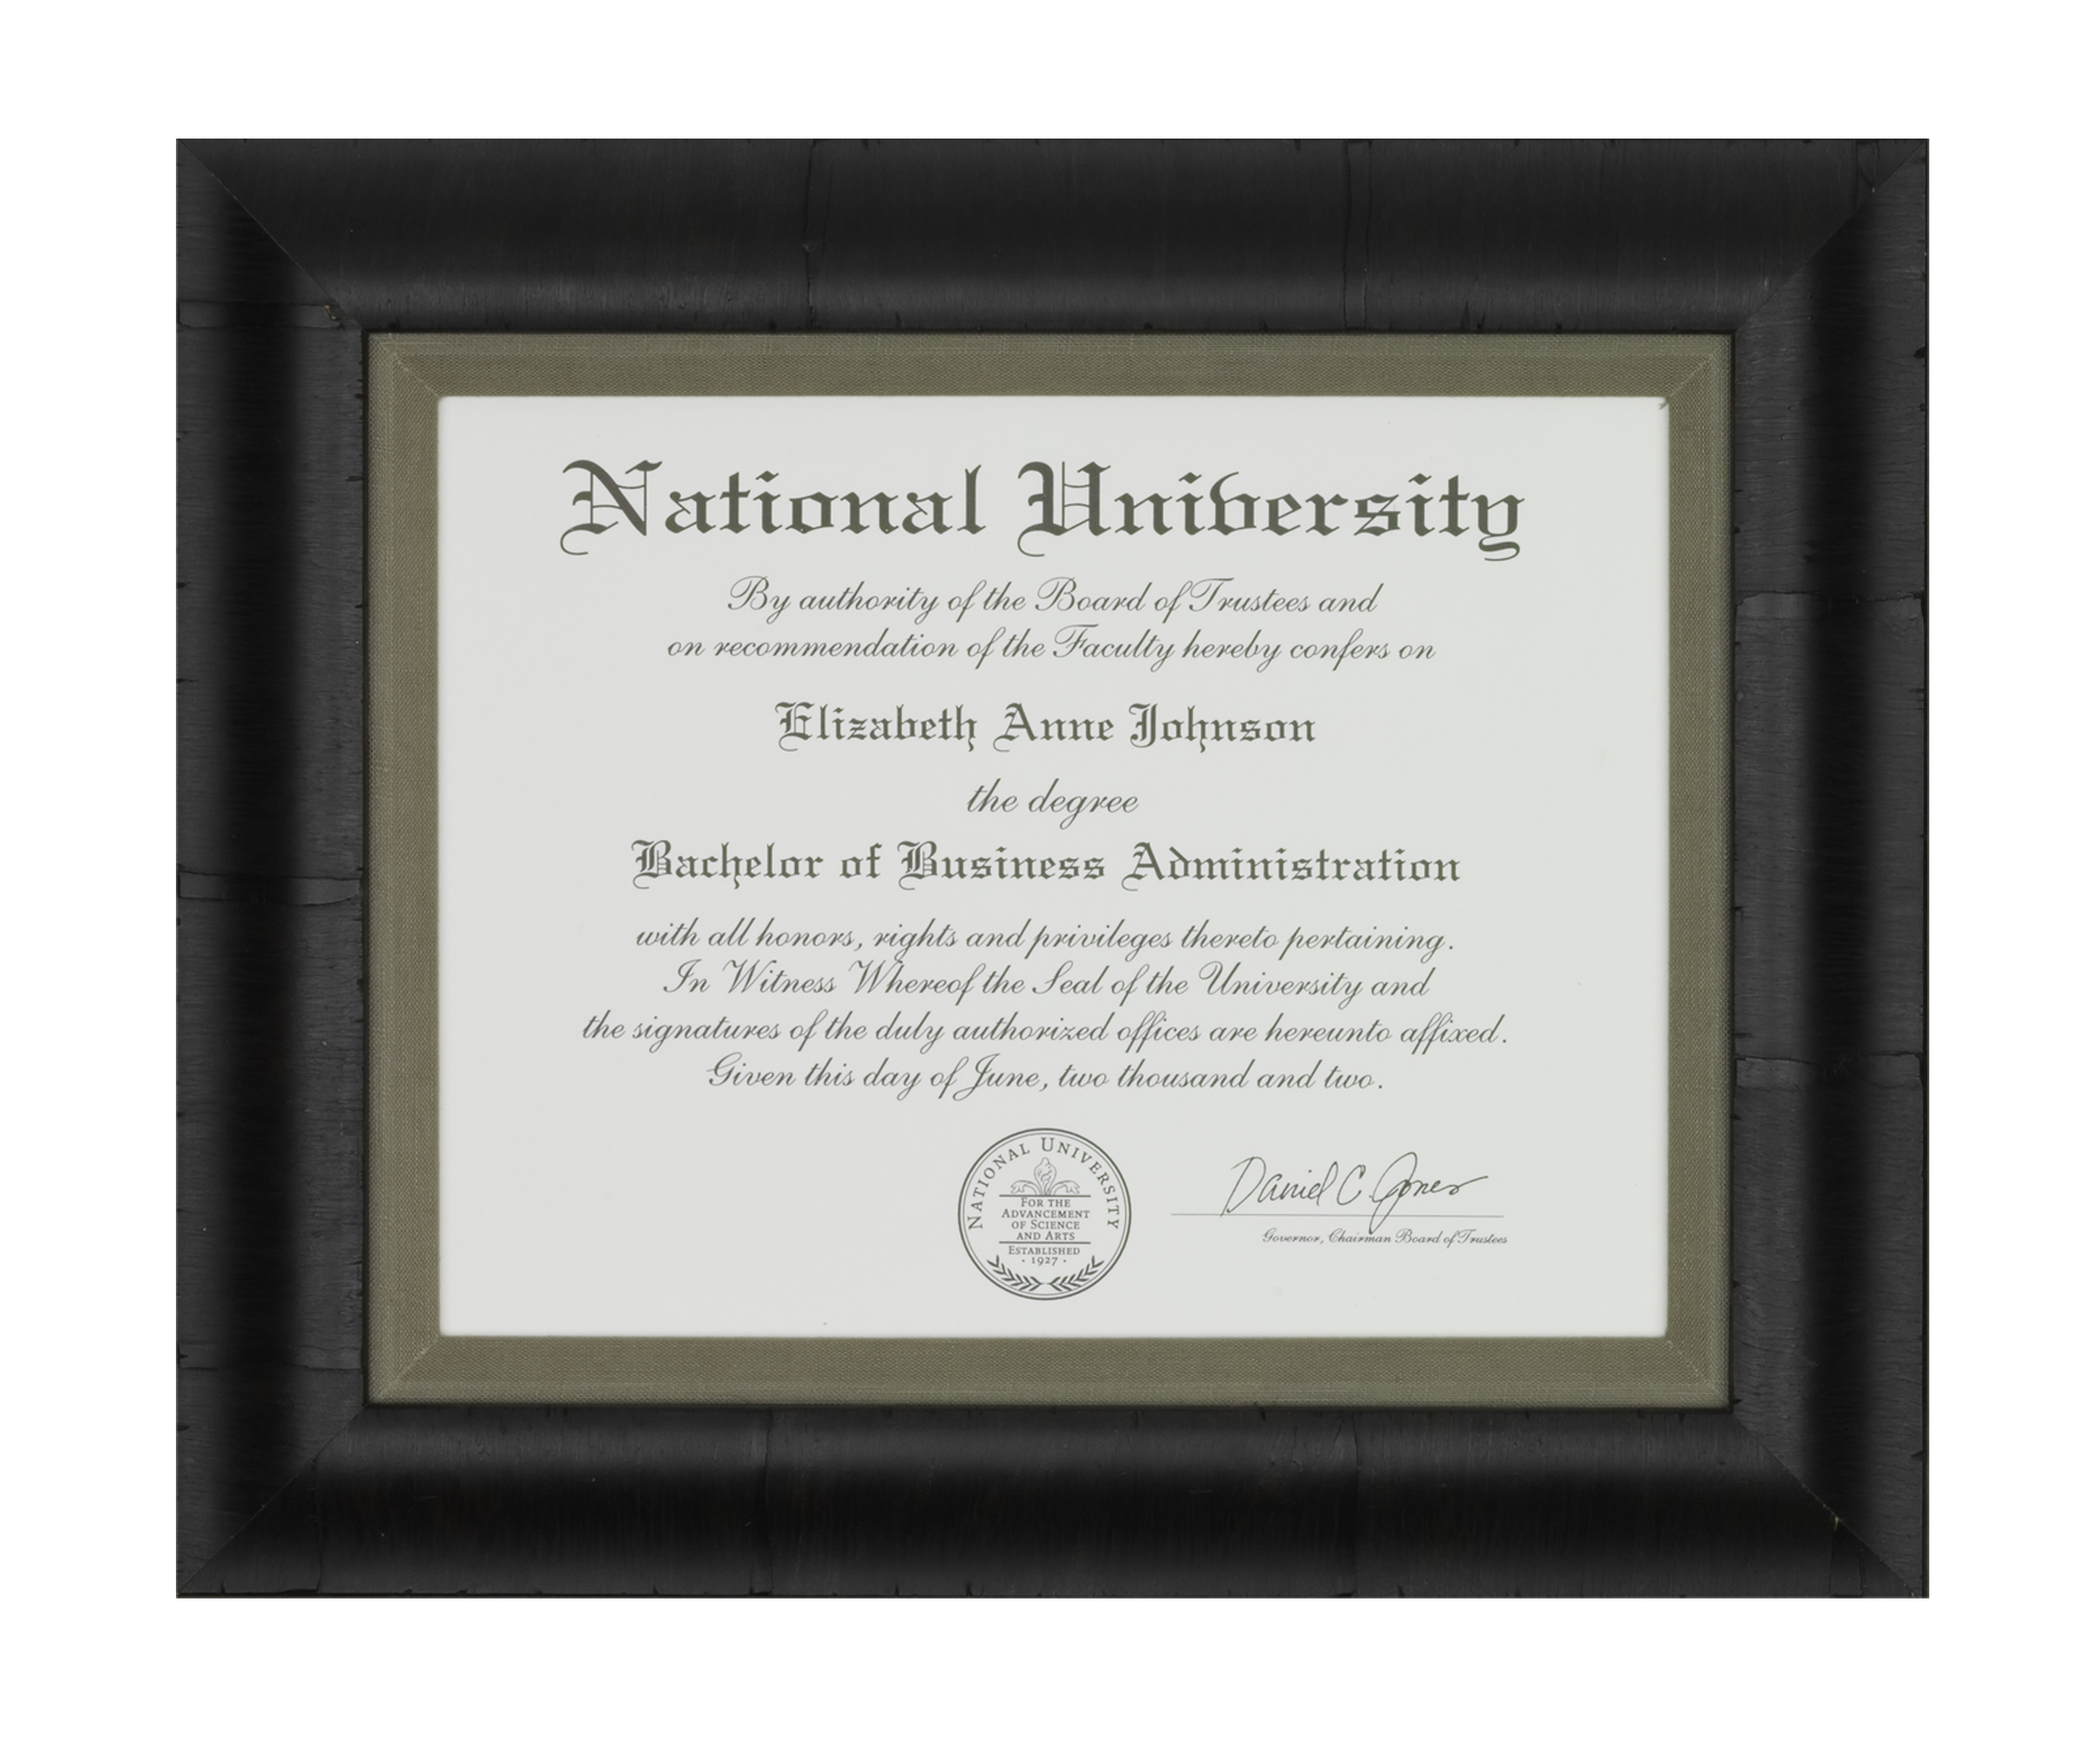 Flax_123964_national_university_diploma_cghylv